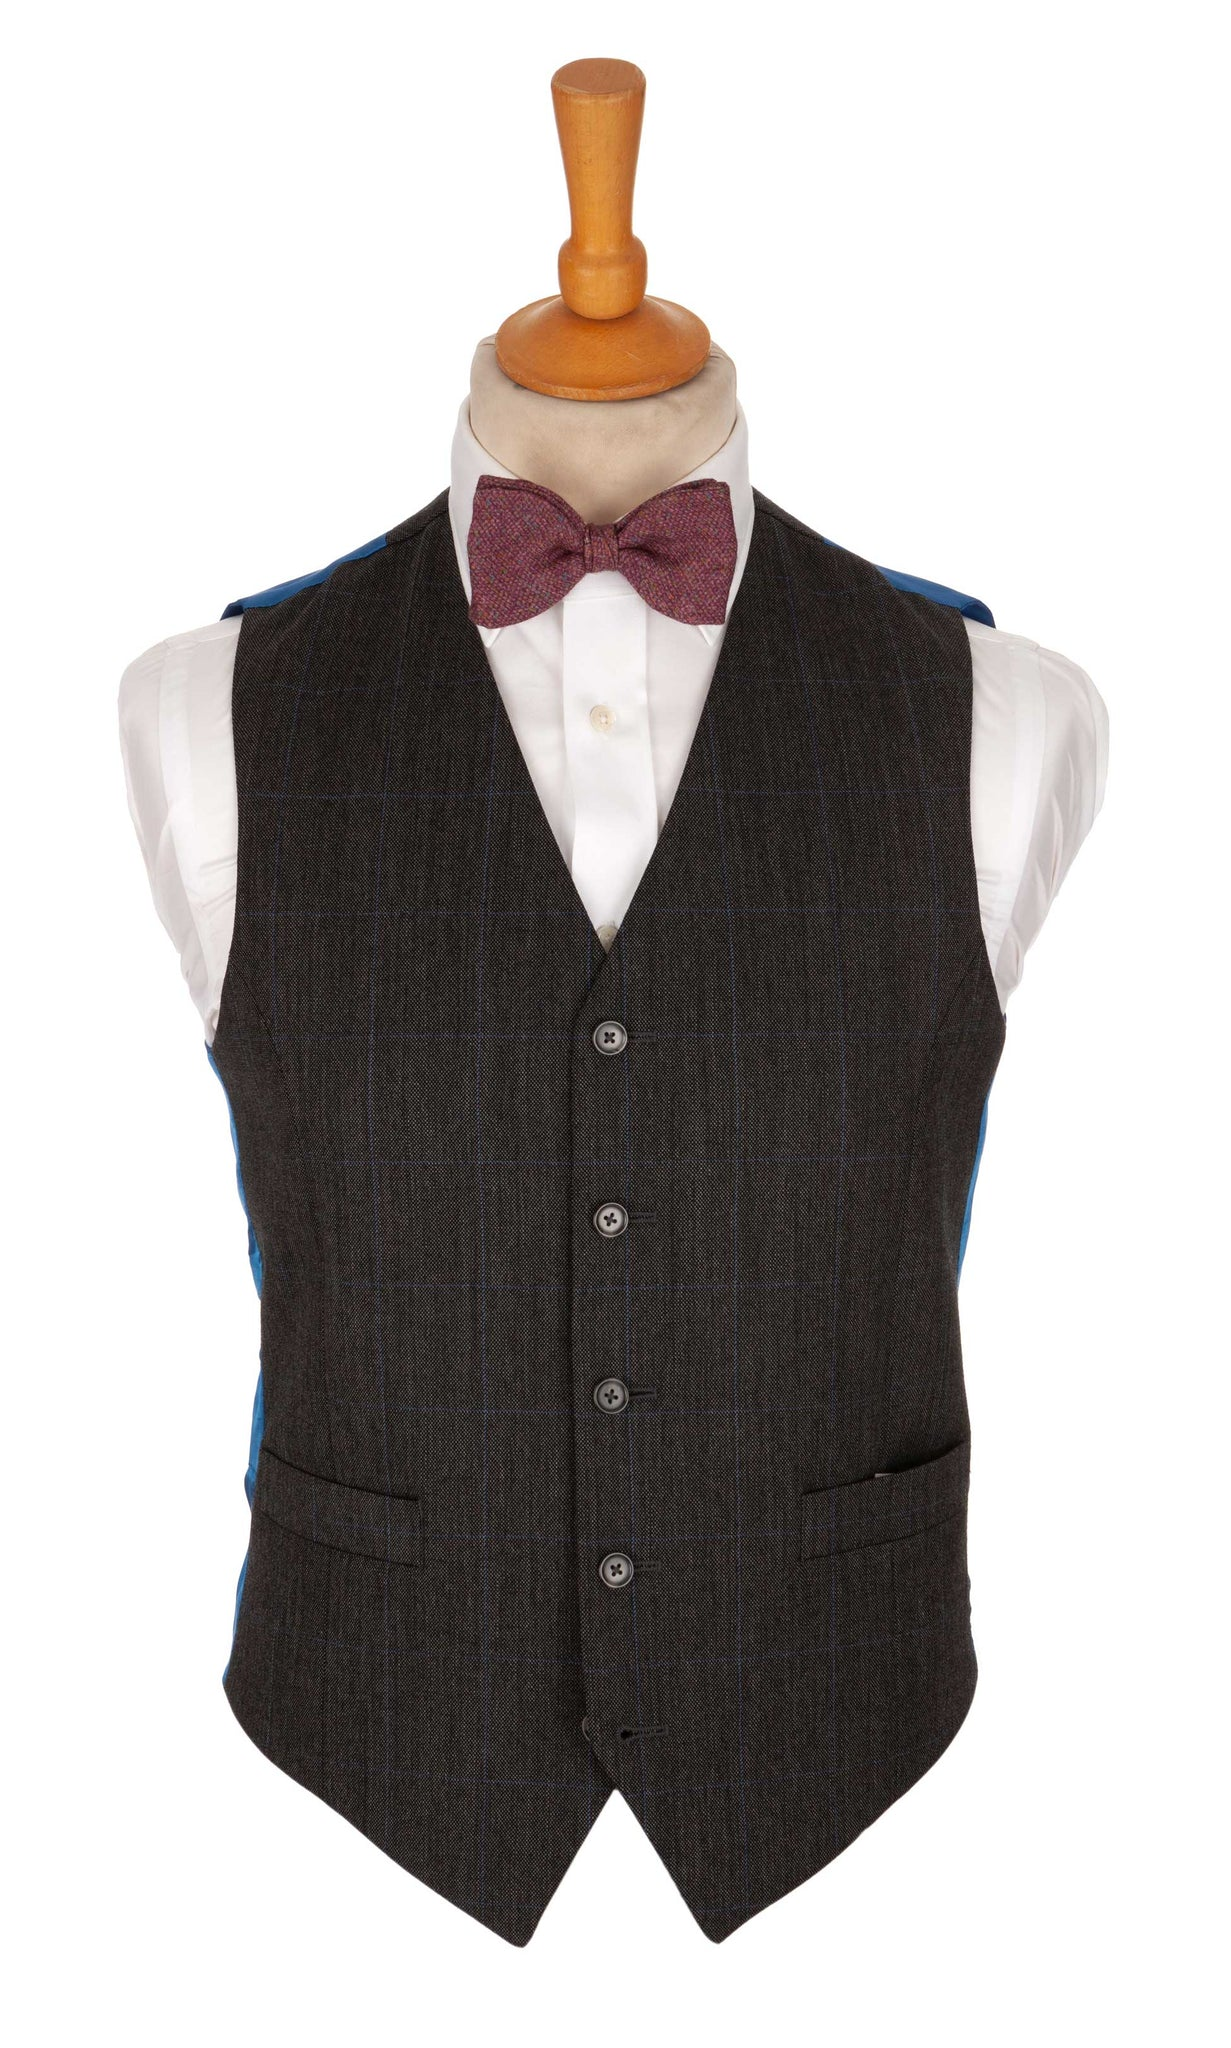 Regent Norton Waistcoat – Charcoal Grey Wool with Blue Overcheck - Regent Tailoring